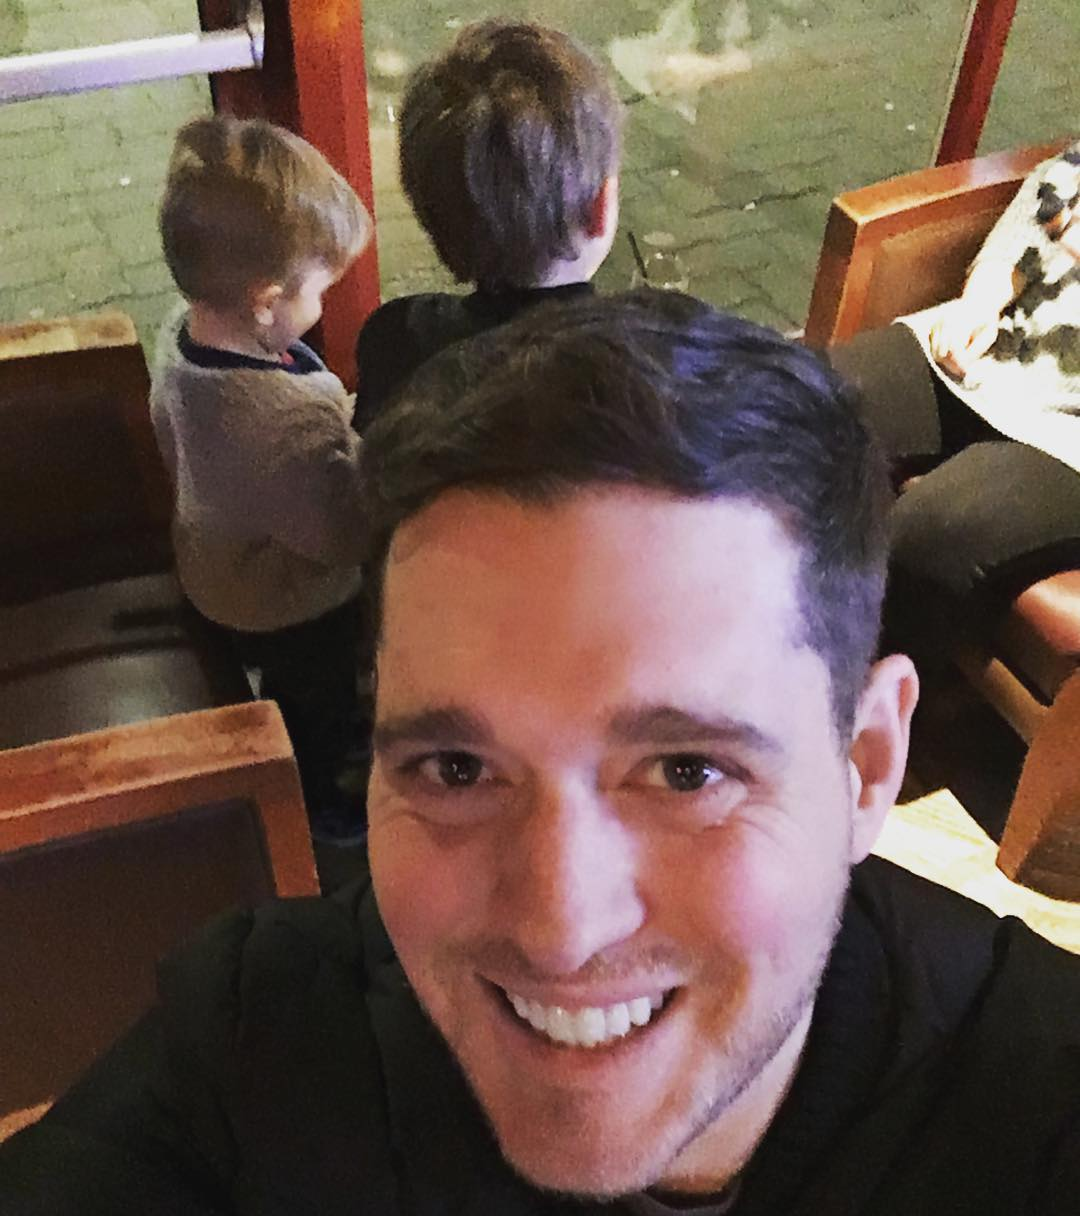 Michael Bublé Instagram: You know you're  a dad when ... You watch the Super Bowl with your kids at the k...